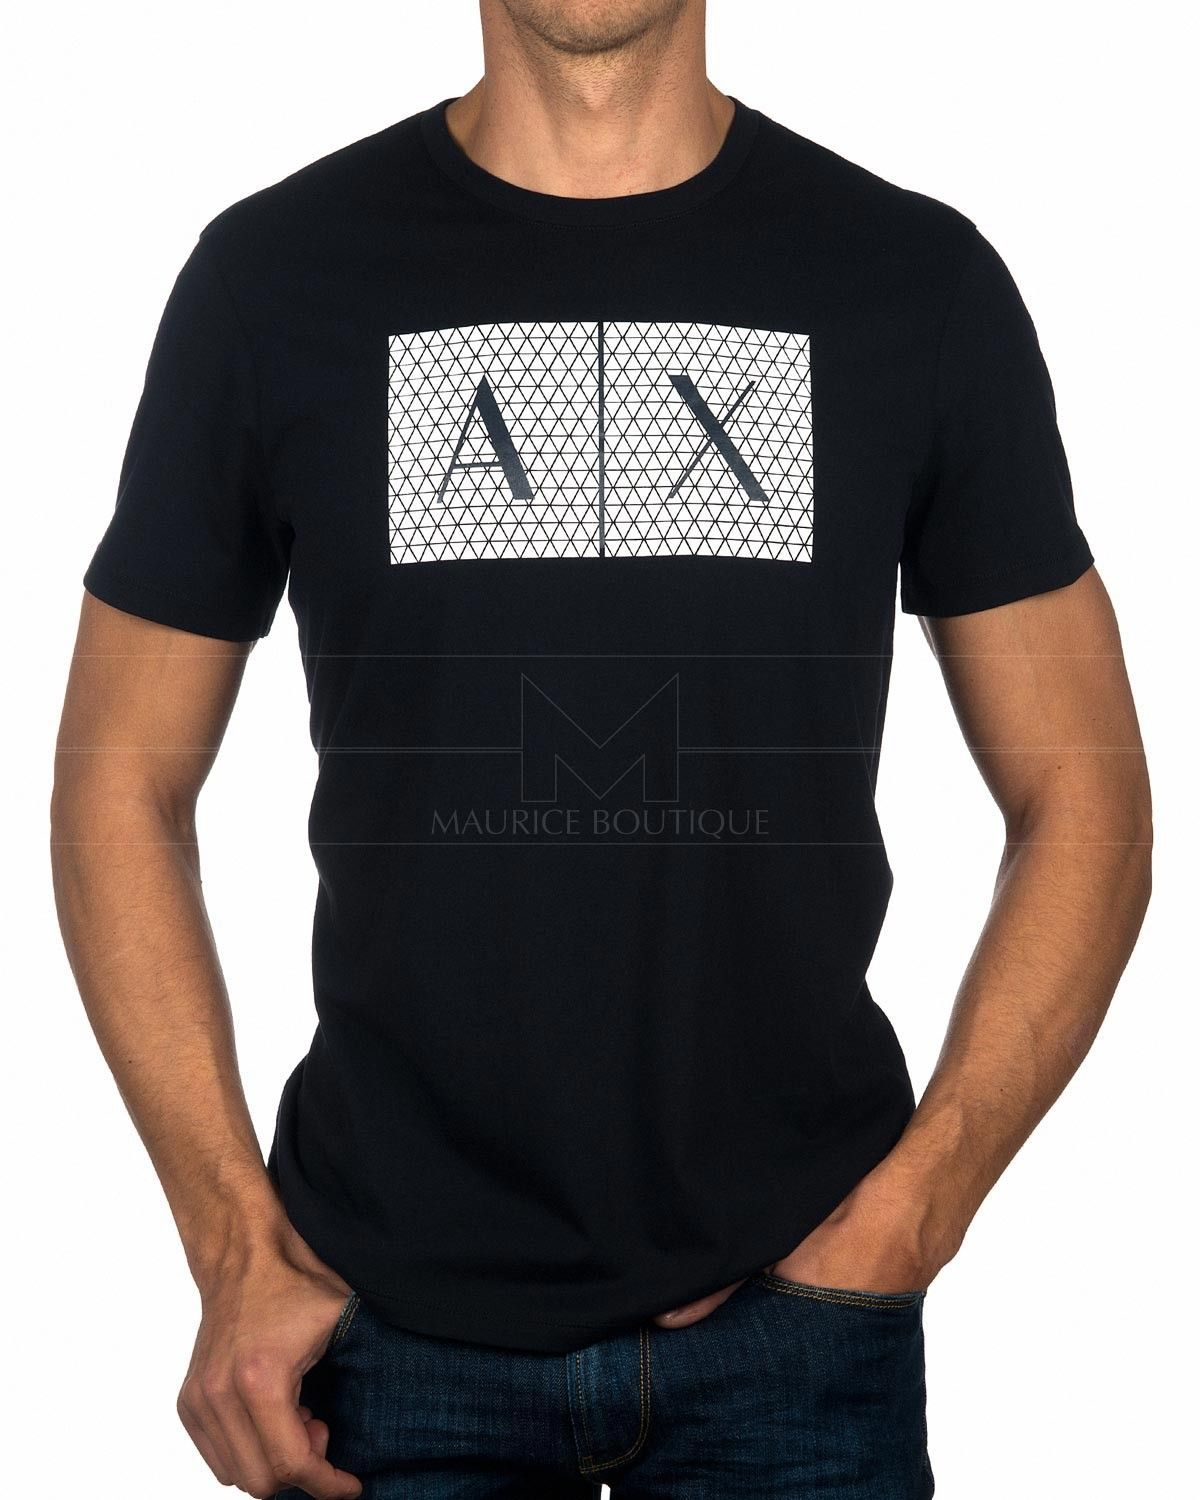 be5562b5a59 Camiseta ARMANI EXCHANGE ® Negra   Blanco